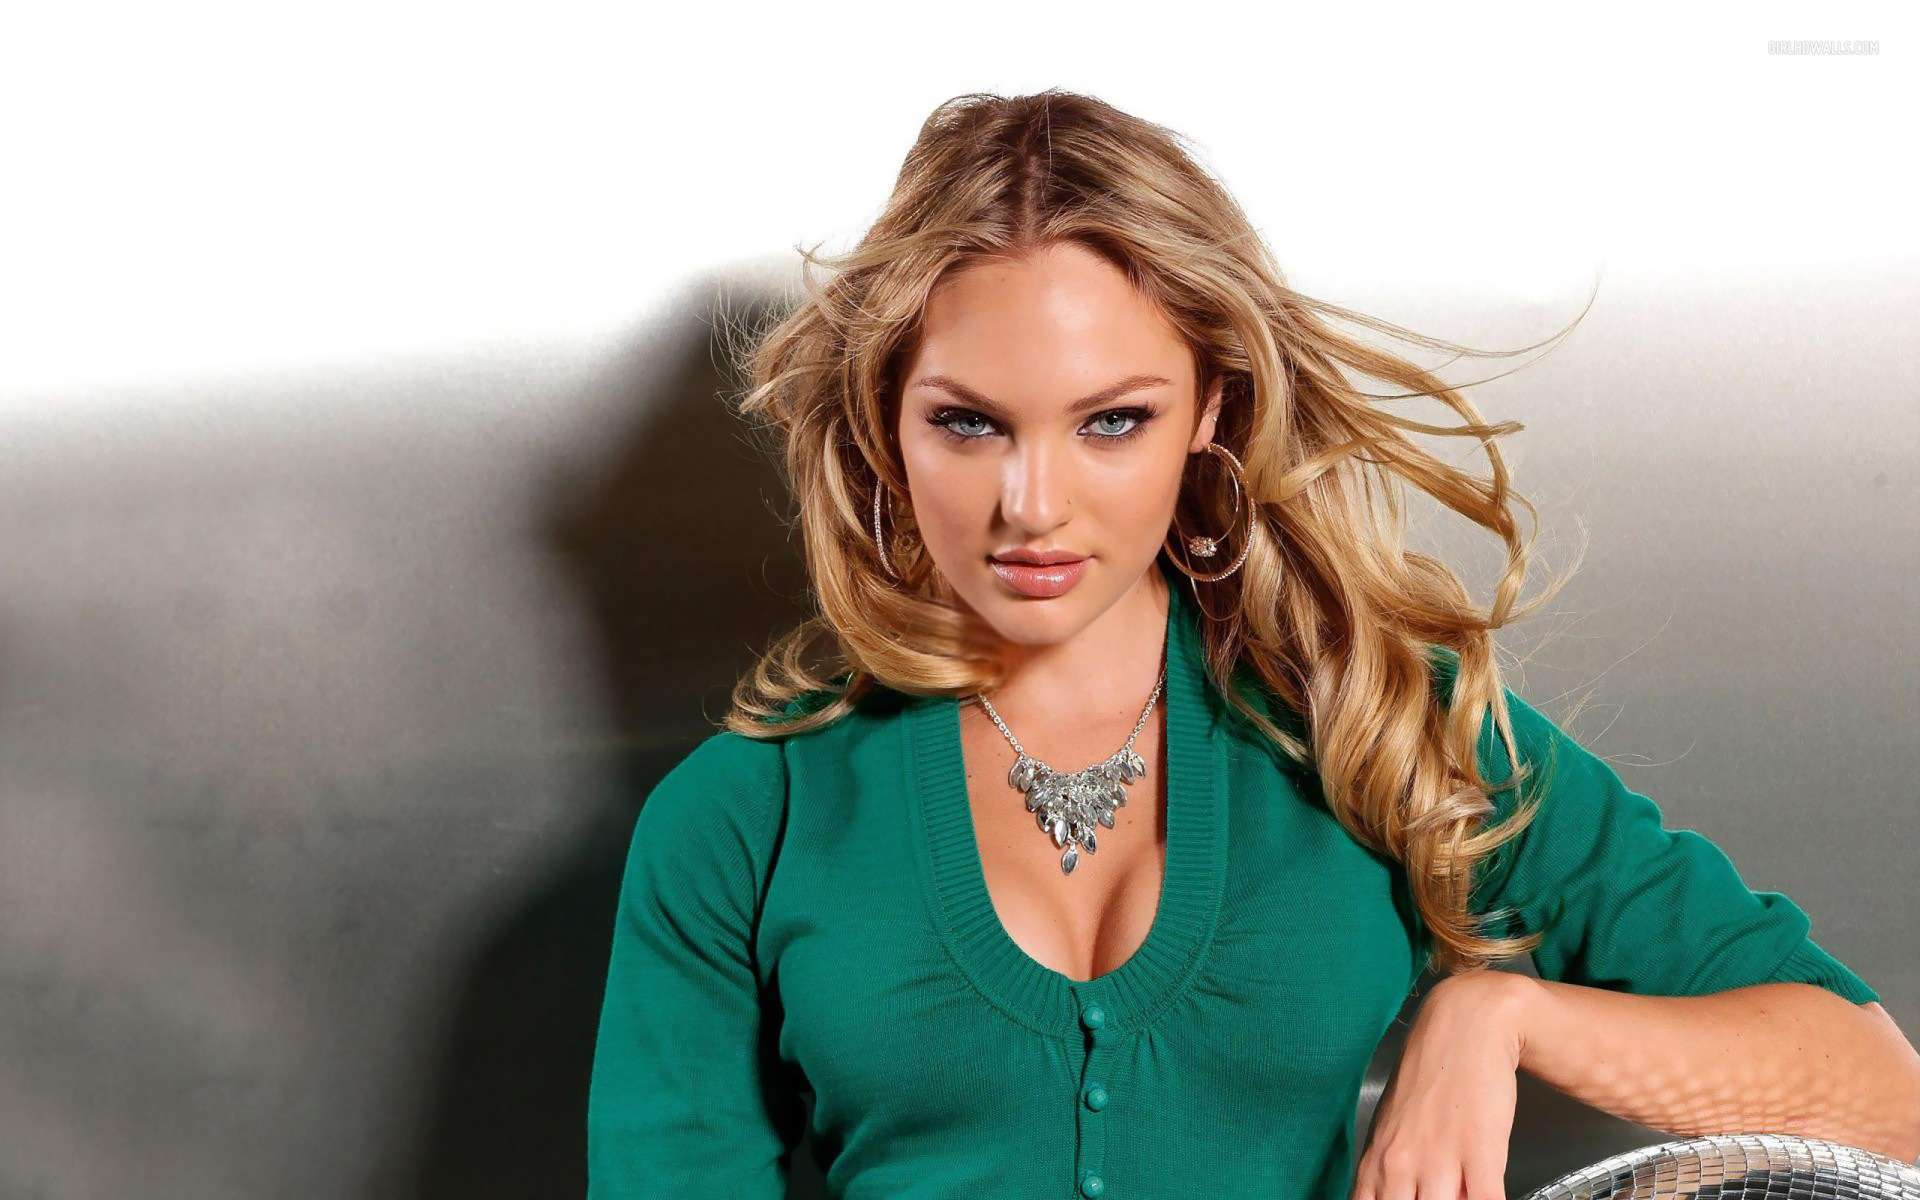 Nice Indian Girl Wallpaper Candice Swanepoel 33 Wallpapers Hd Wallpapers